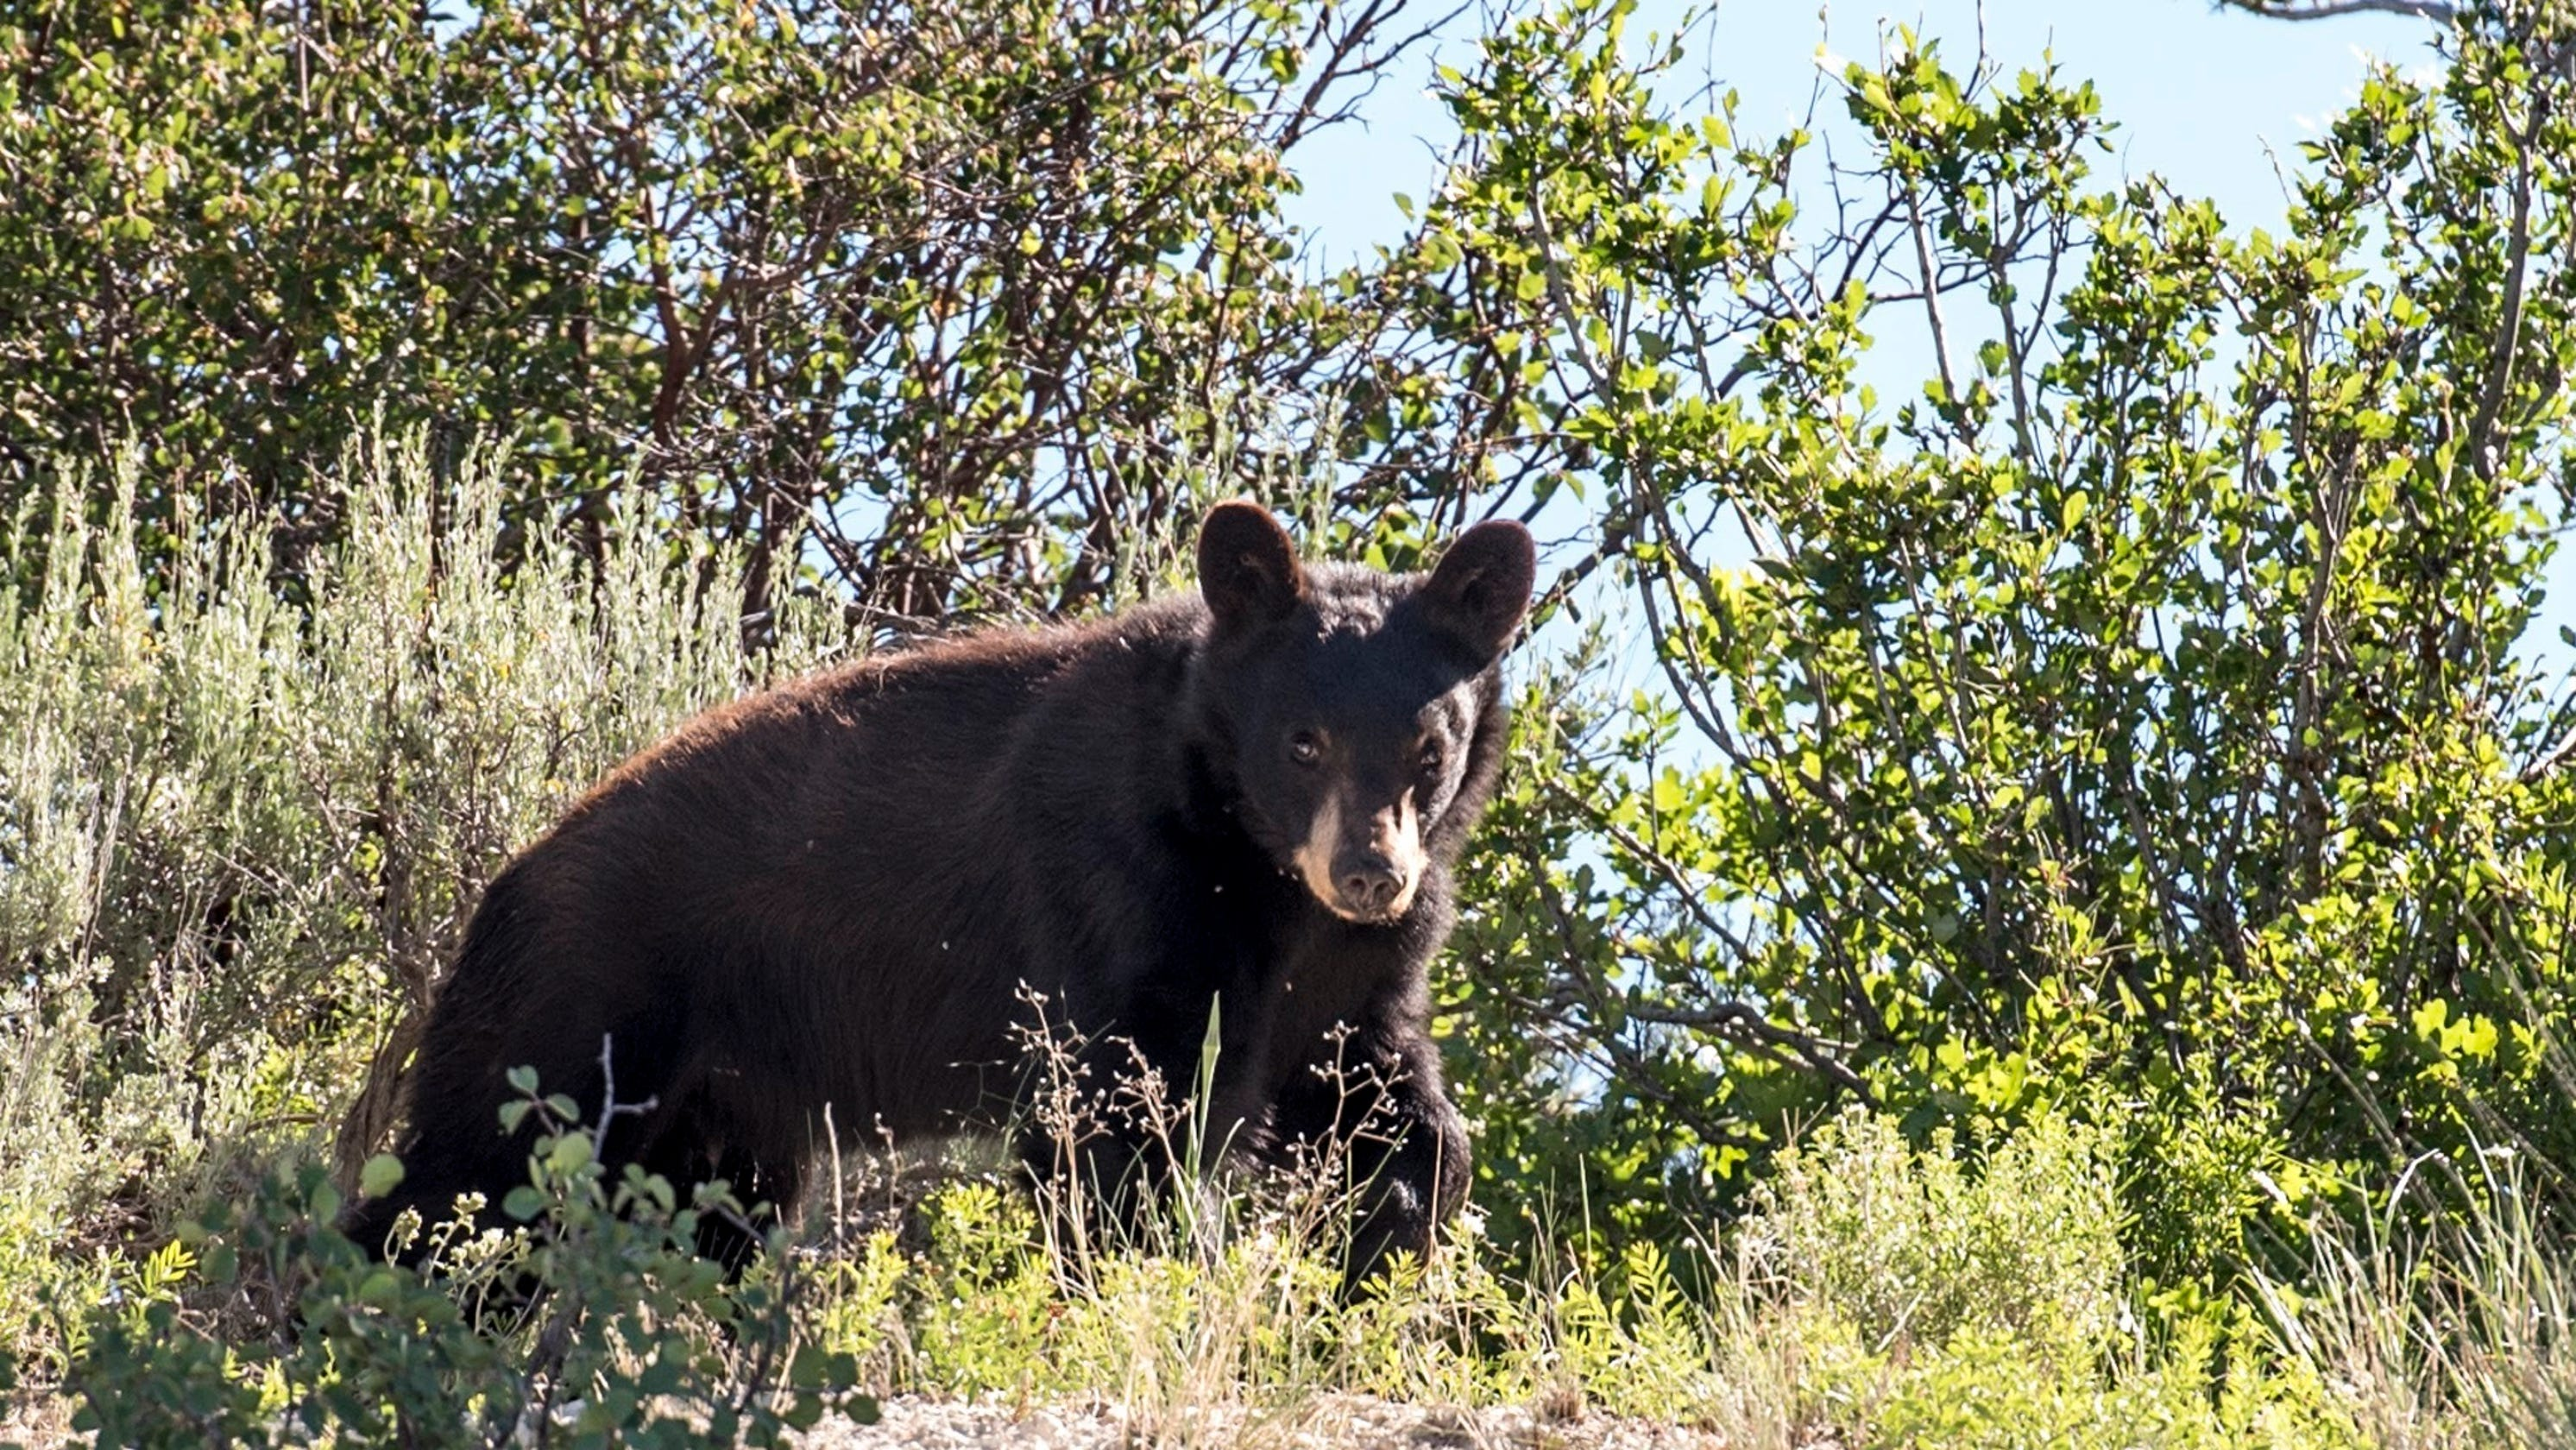 Reports of run-ins with bears soar in Utah after wet spring